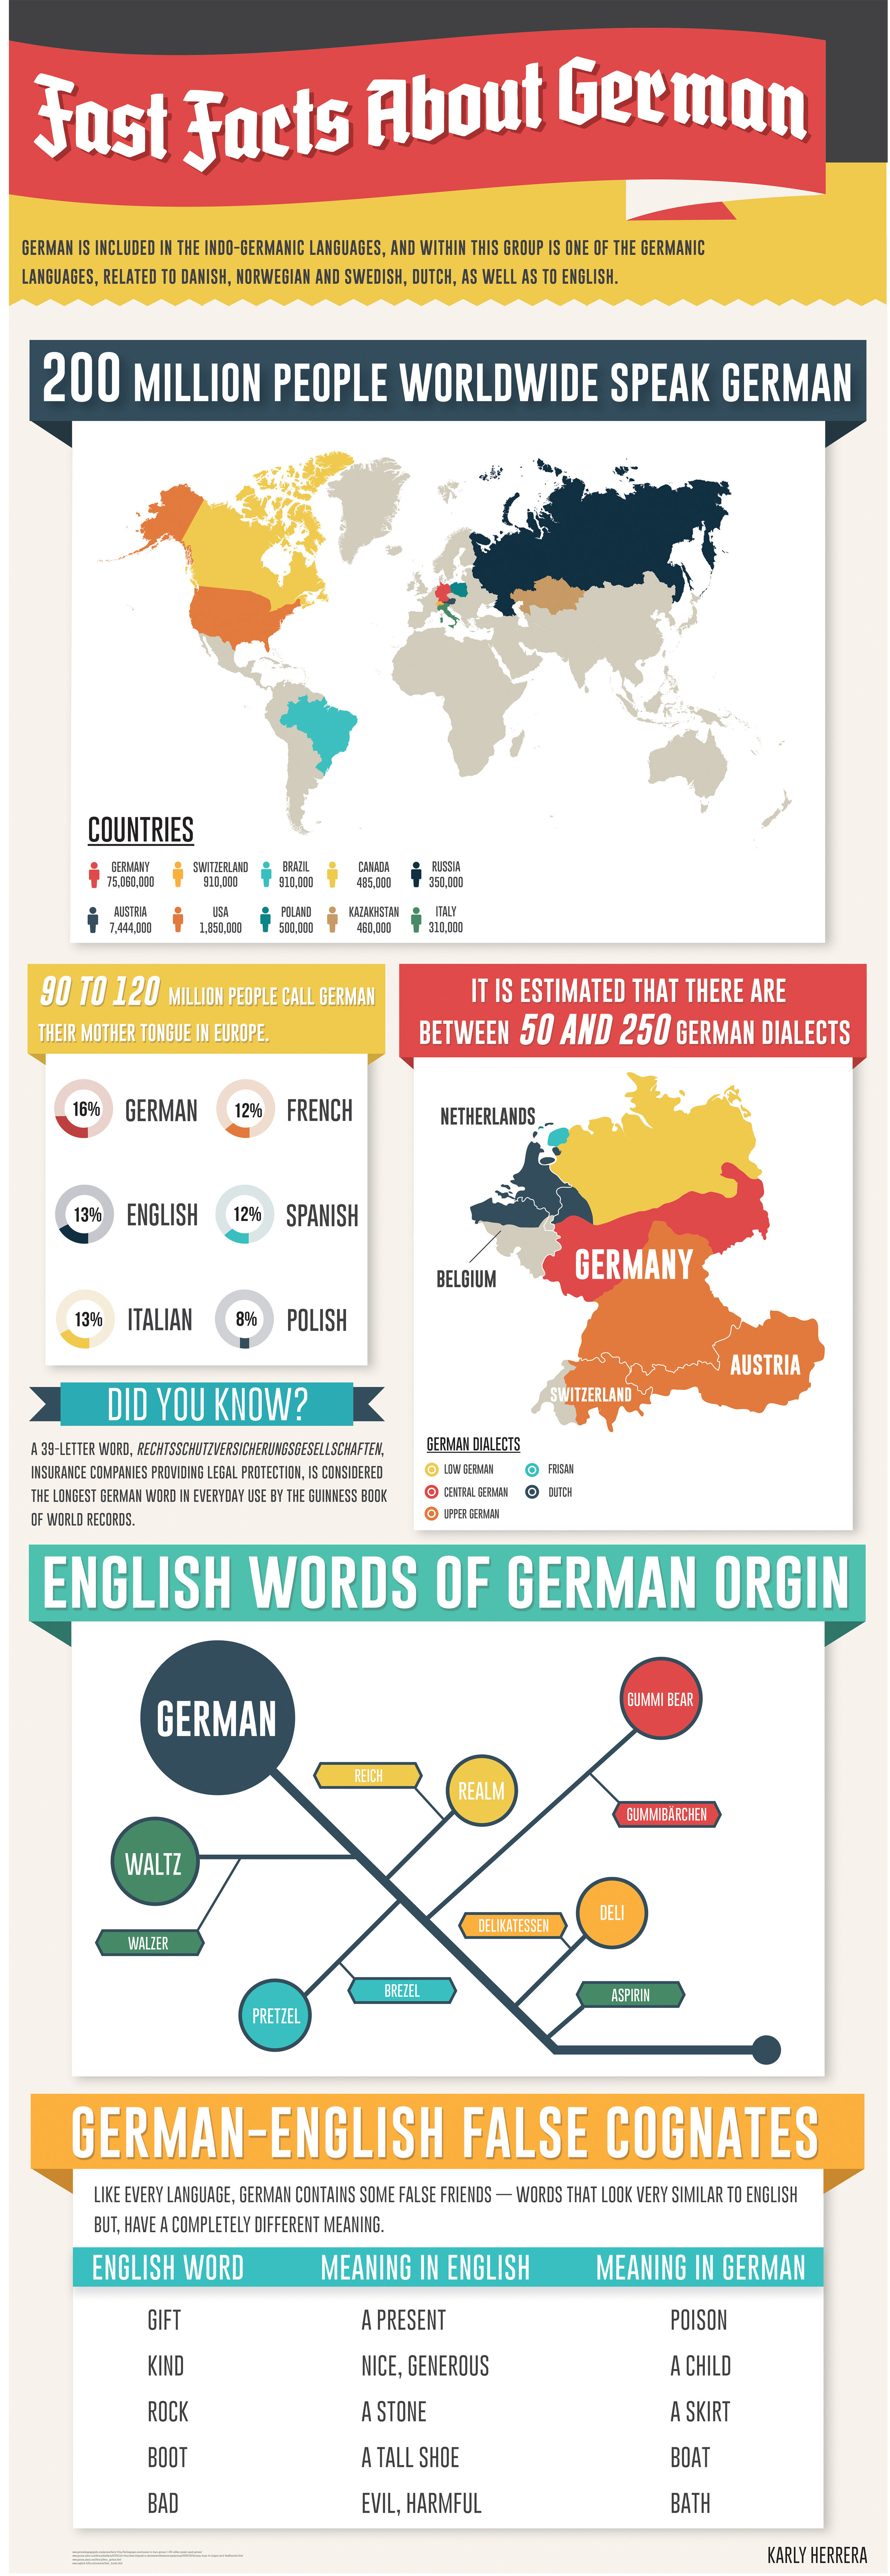 Fast Facts About German — Karly Herrera